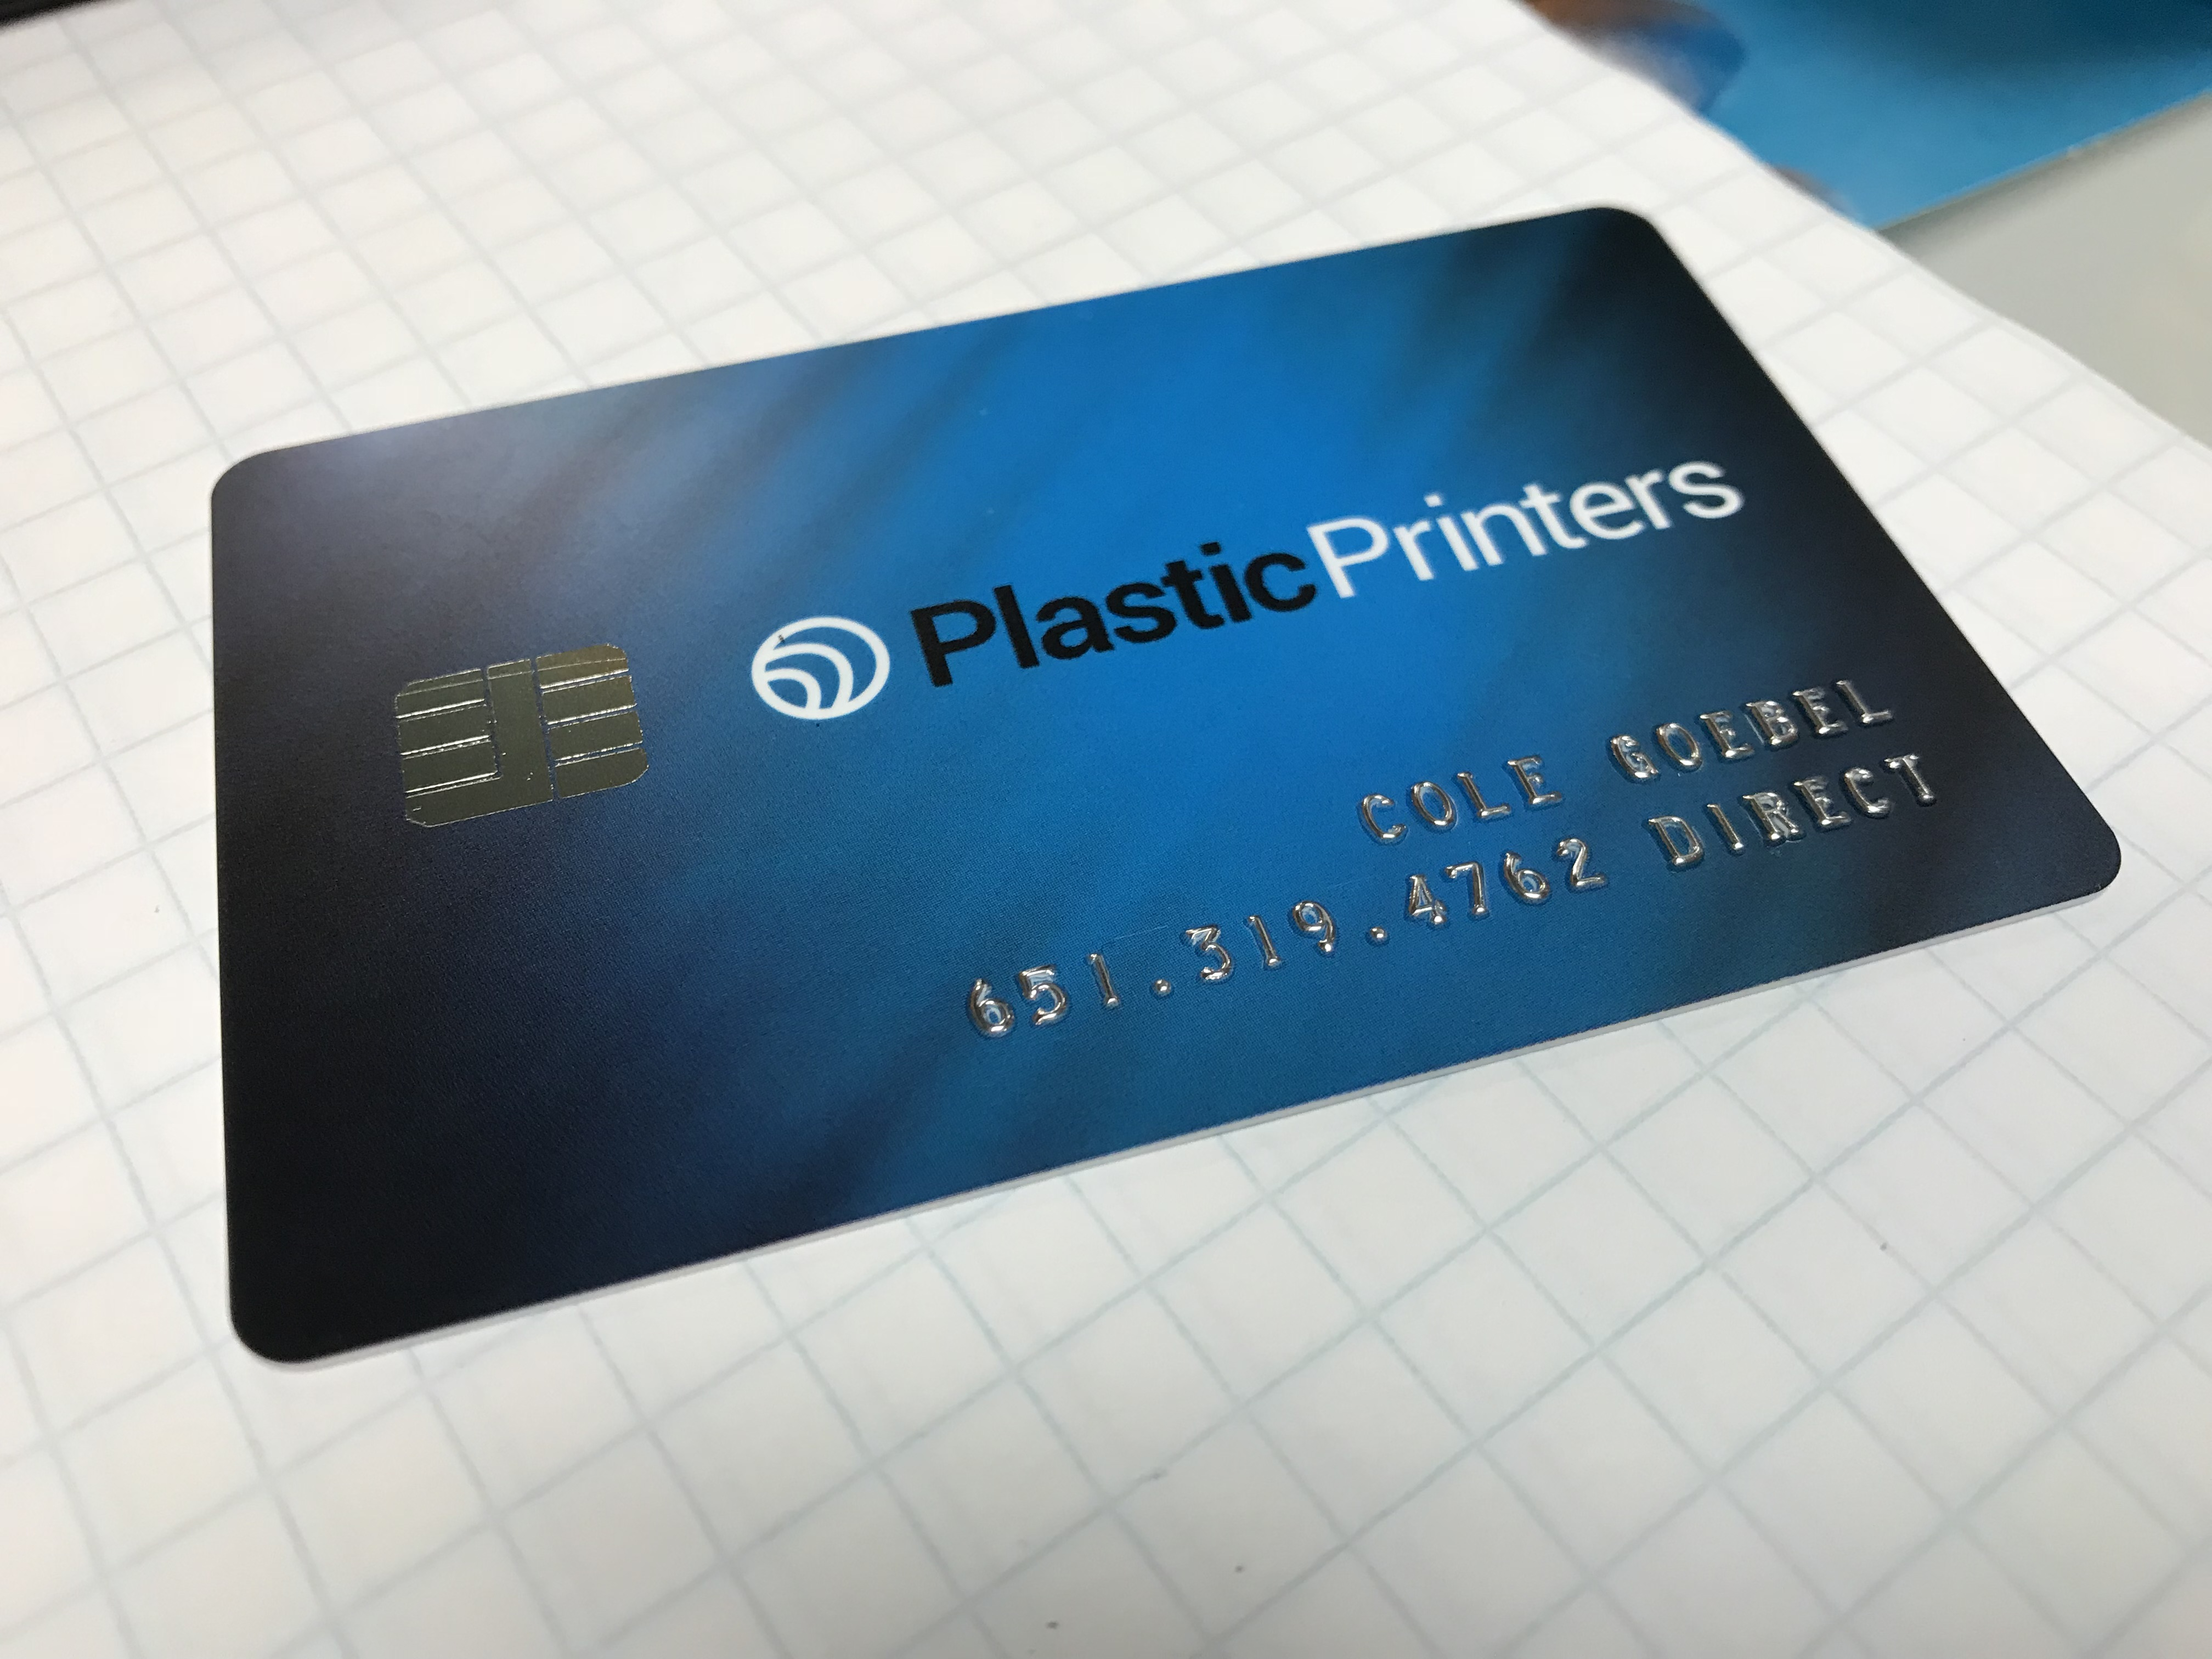 Plastic Business Cards, Leaving Paper in the Trash